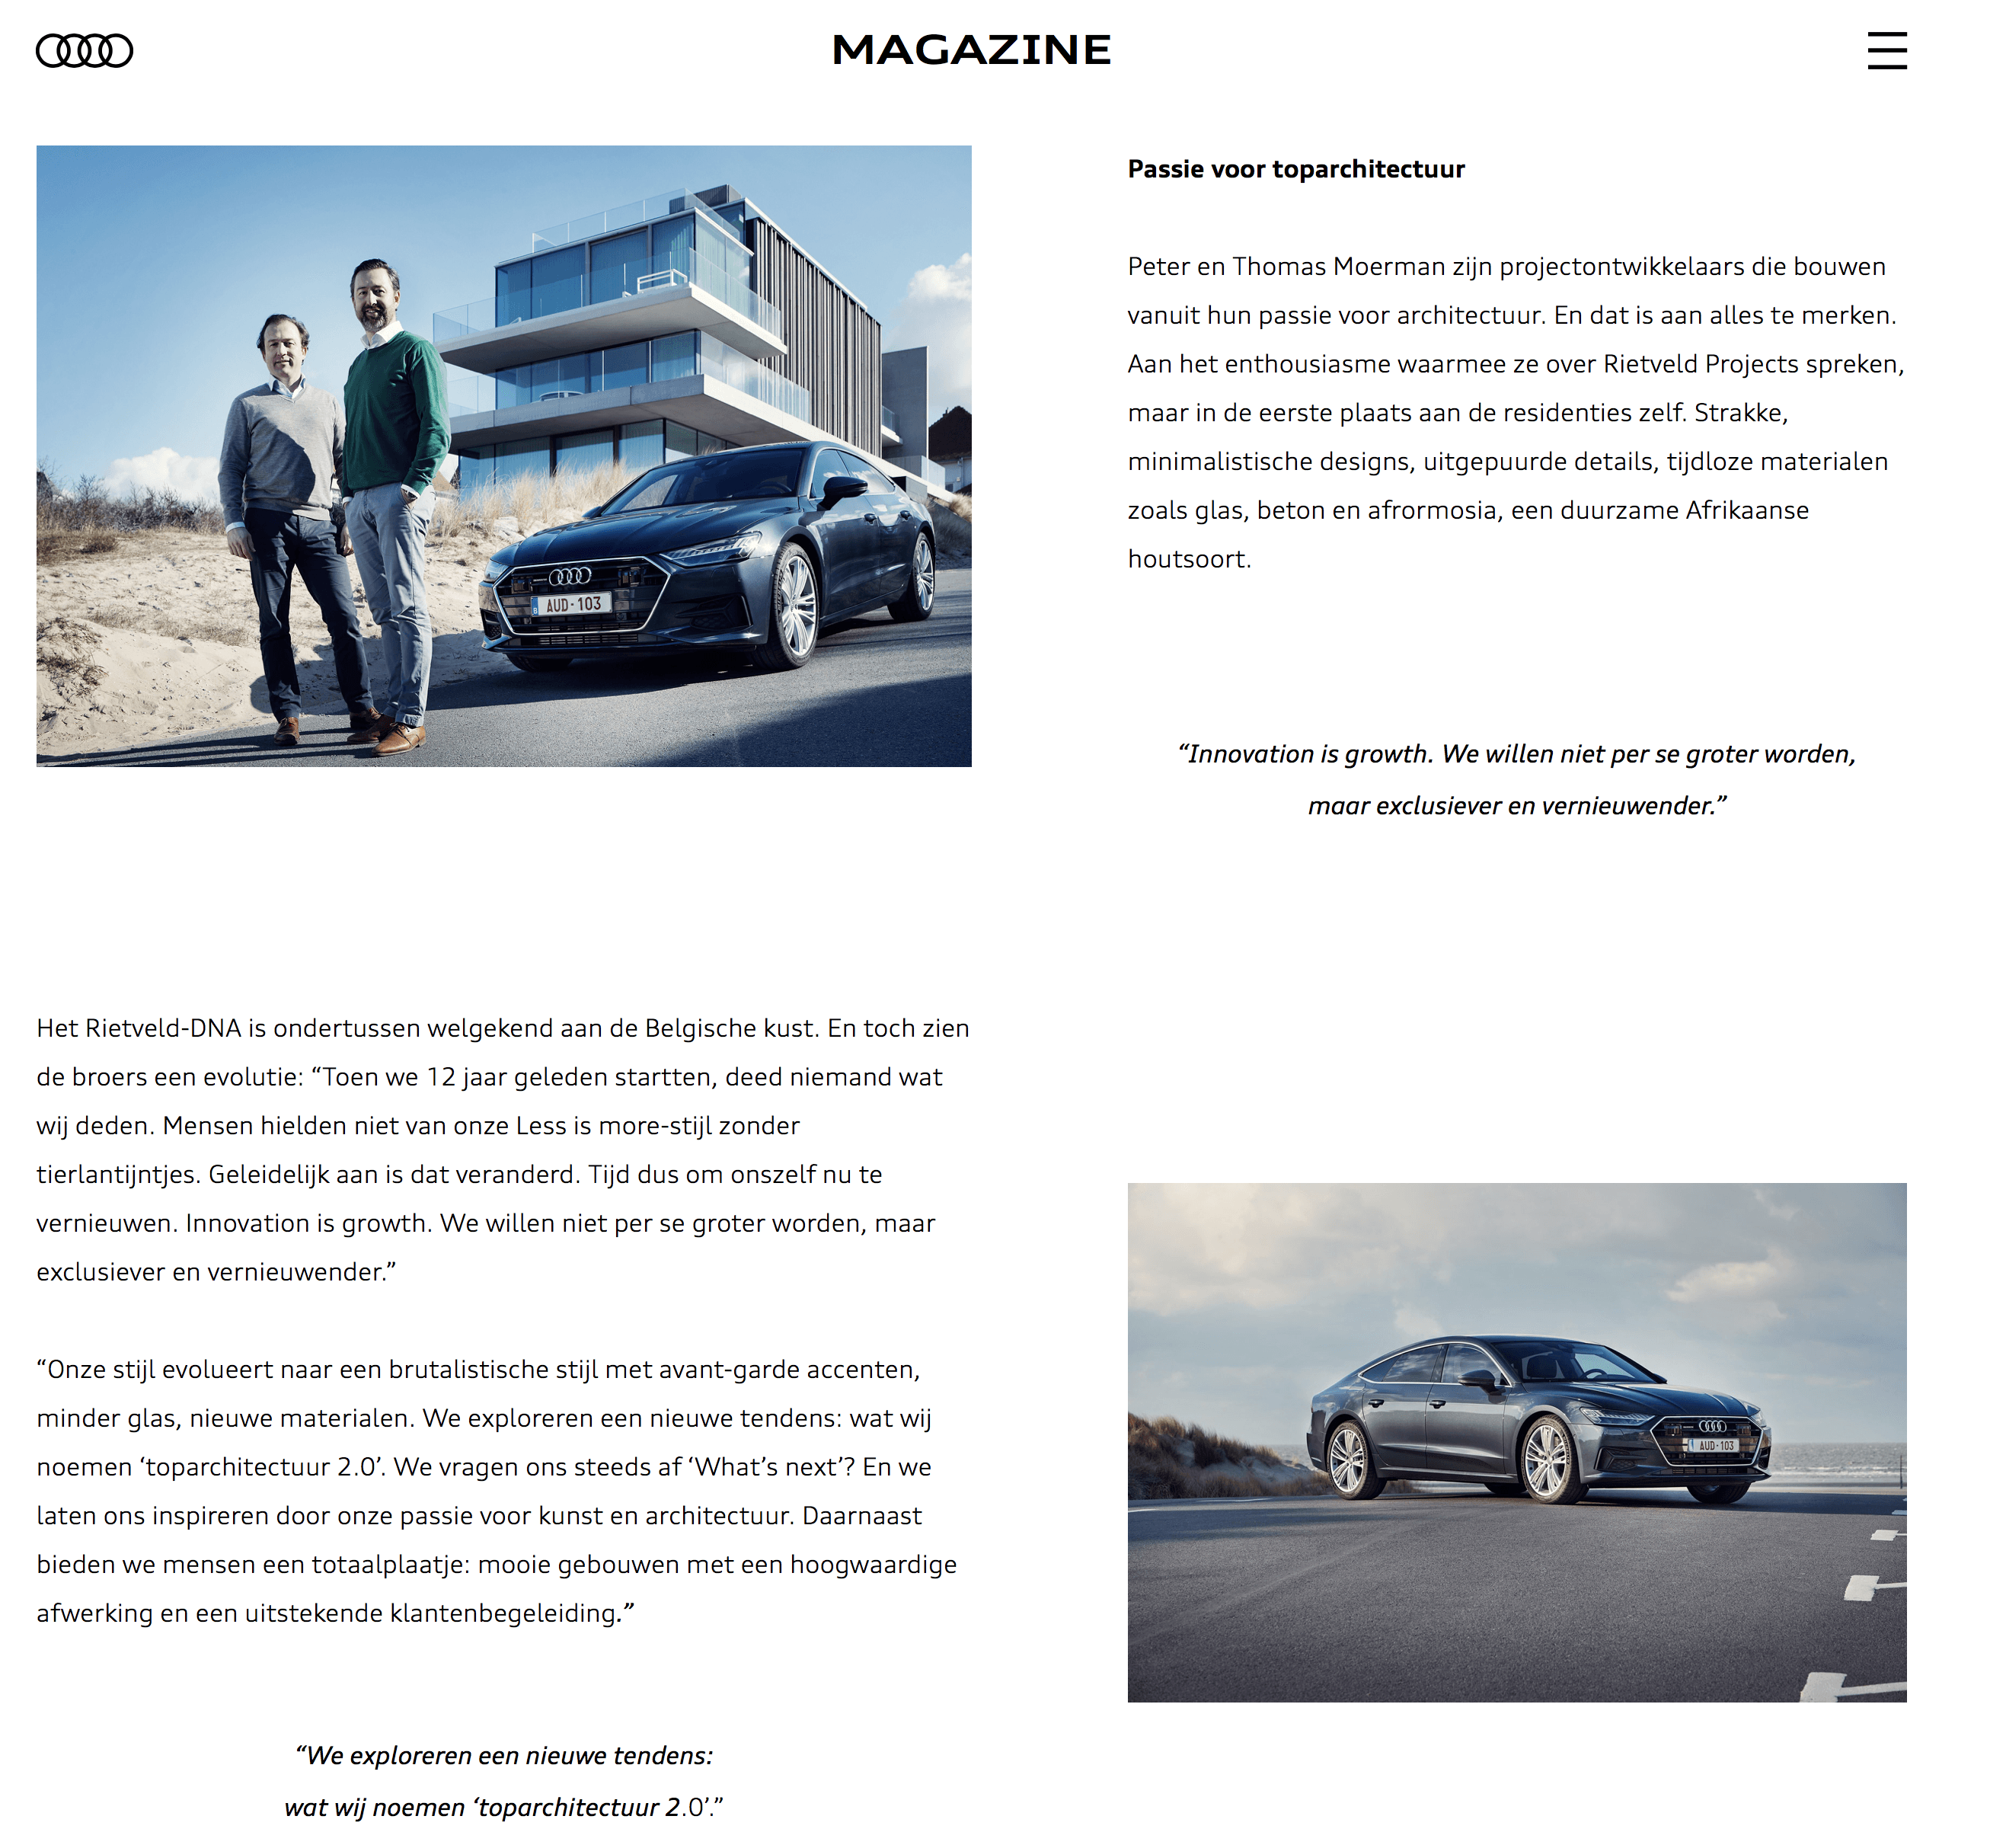 Launch Audi A7 belgique & Rietveldprojects